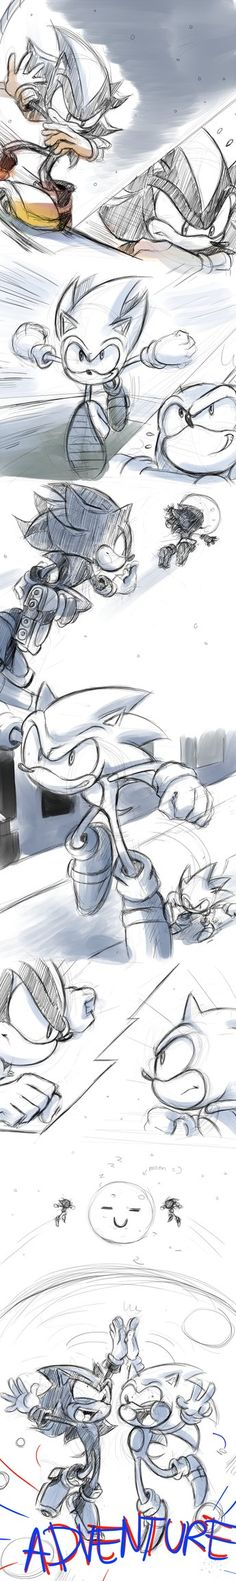 Sonic Adventure<<I envy people that can draw so professionally and then derp them in any way possible